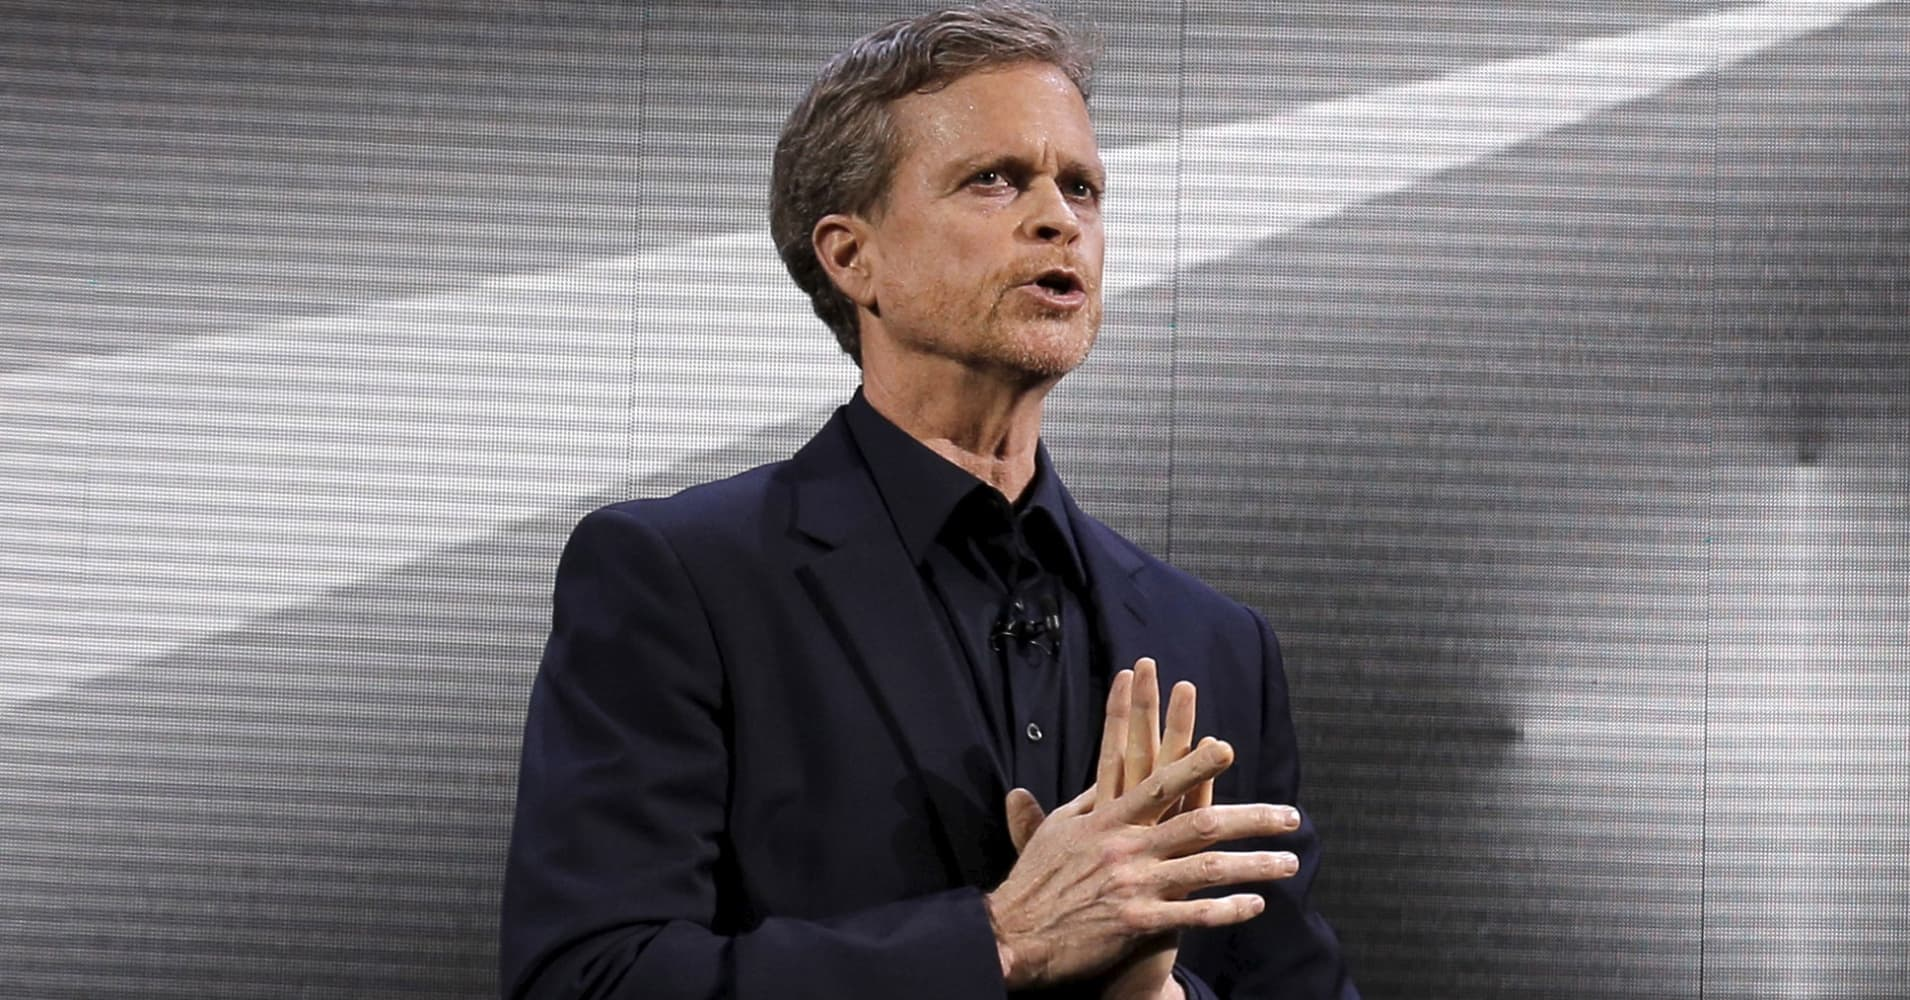 Nike CEO Mark Parker speaks during a launch event in New York March 16, 2016.